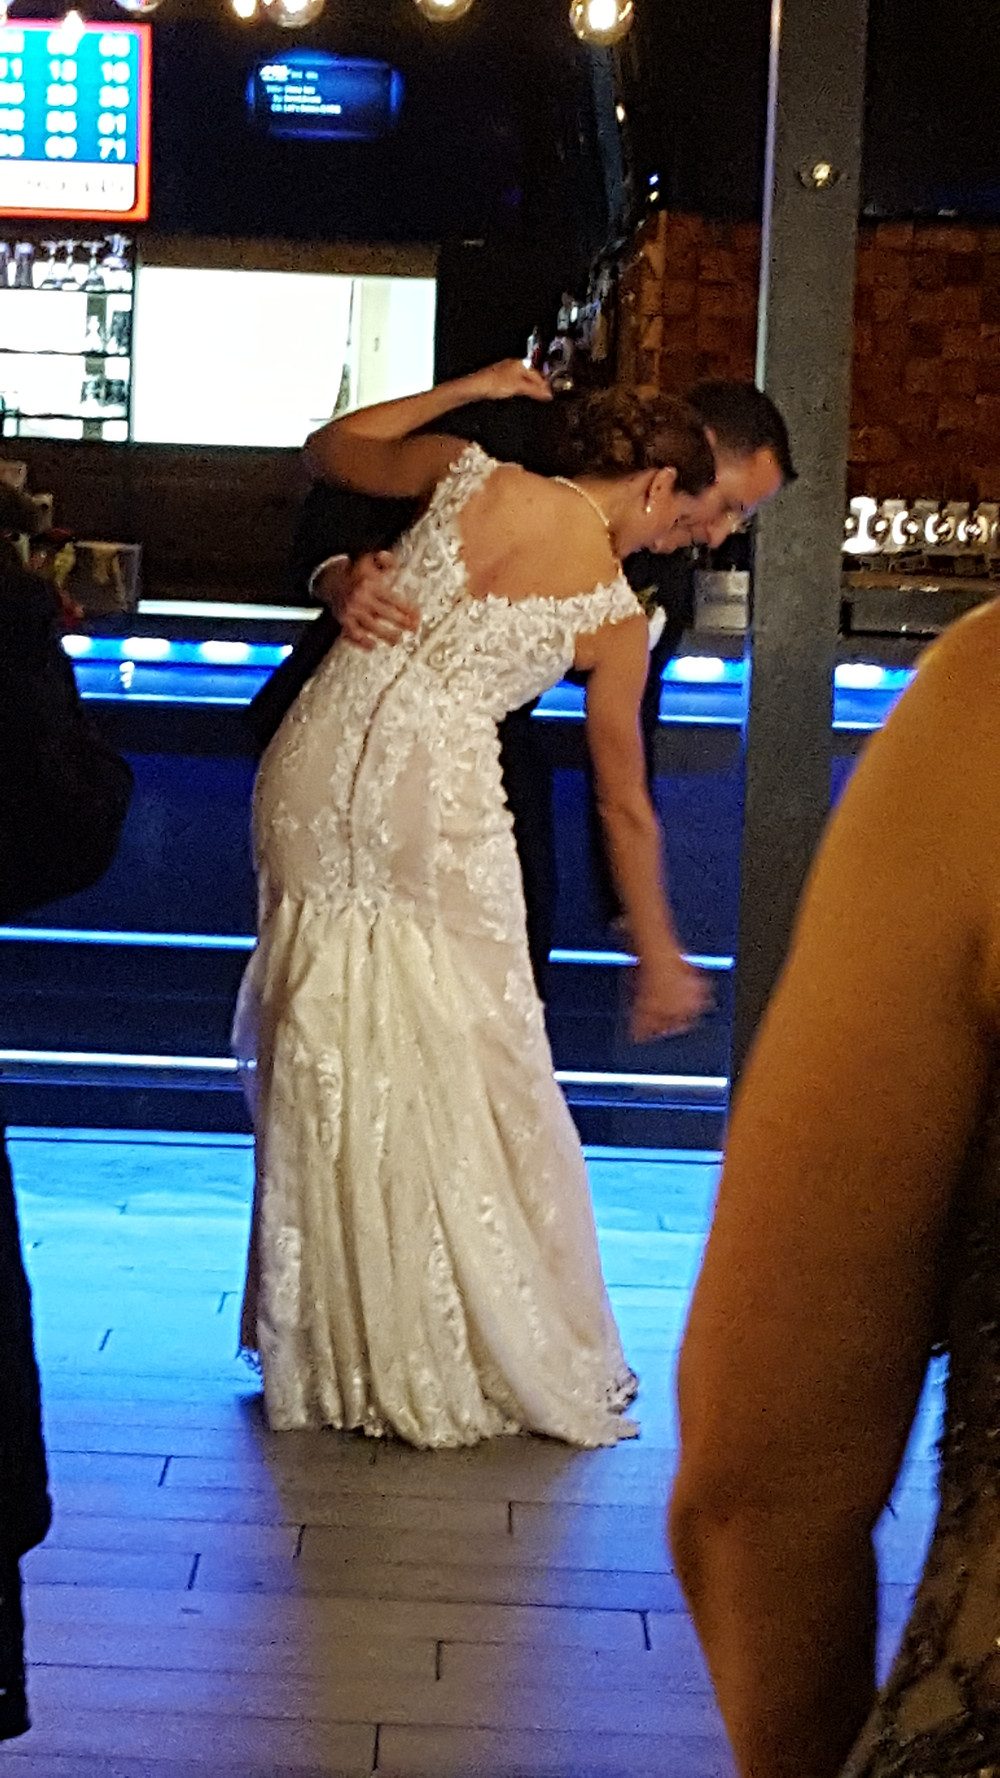 Choreographed wedding dance by the Bride and Groom.  Ceremony and Dinner music by Rondo String Quartet. www.RondoStringQuartet.com